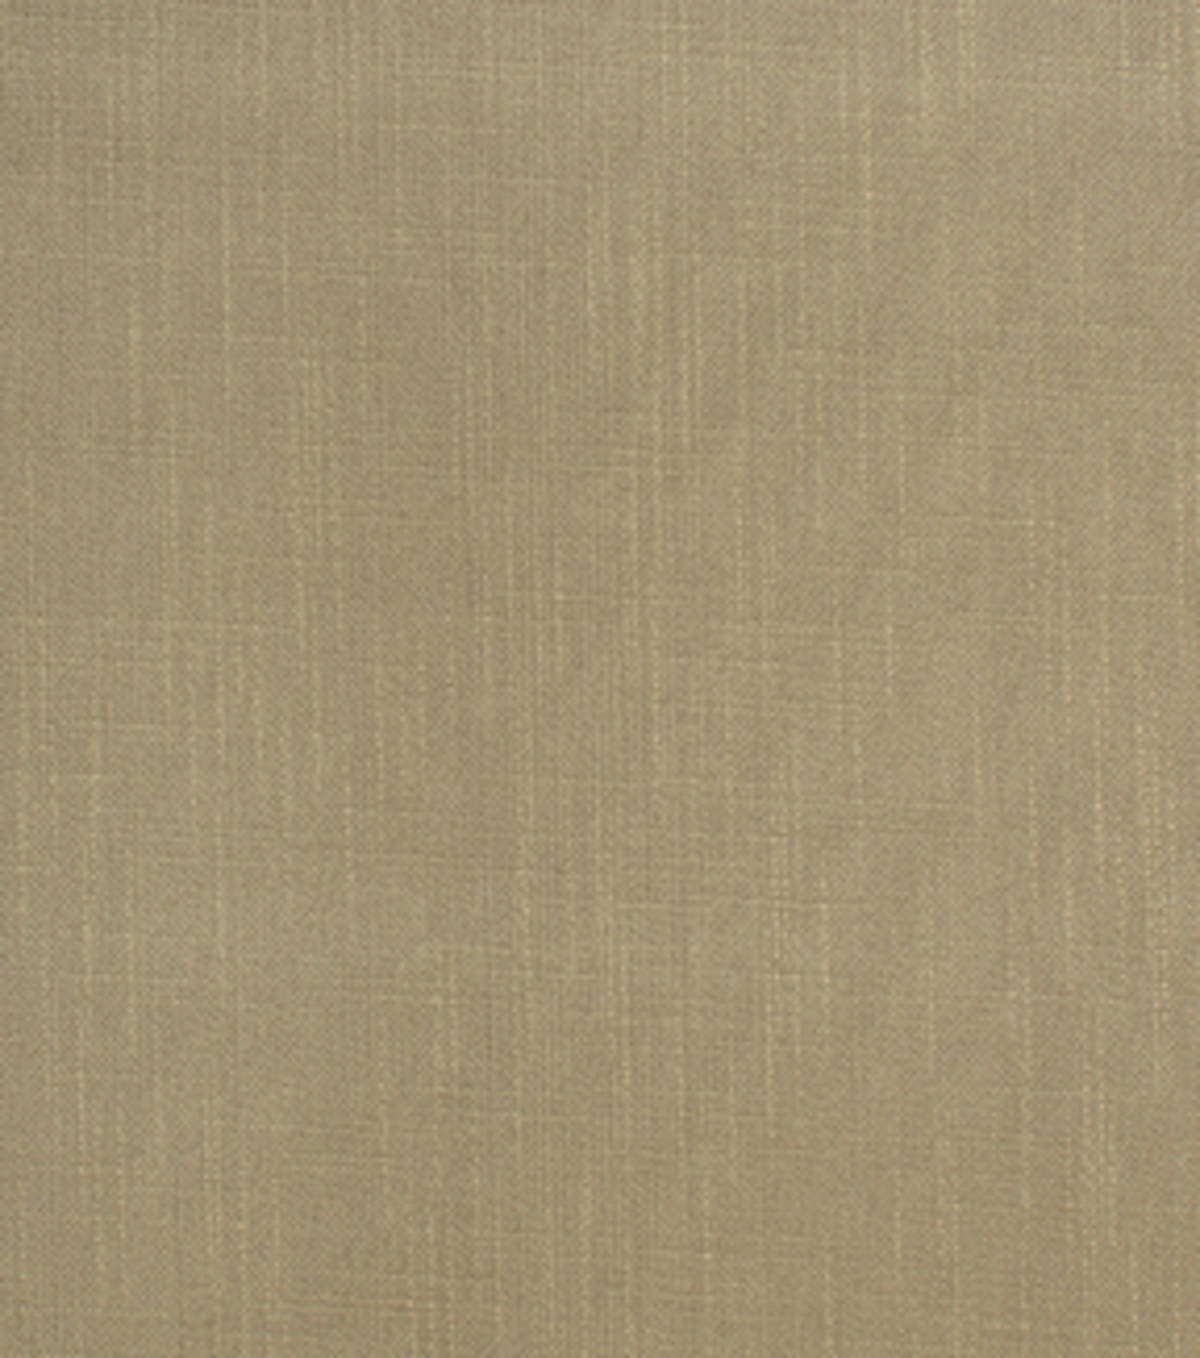 Home Decor 8\u0022x8\u0022 Fabric Swatch-Signature Series Gallantry Barley